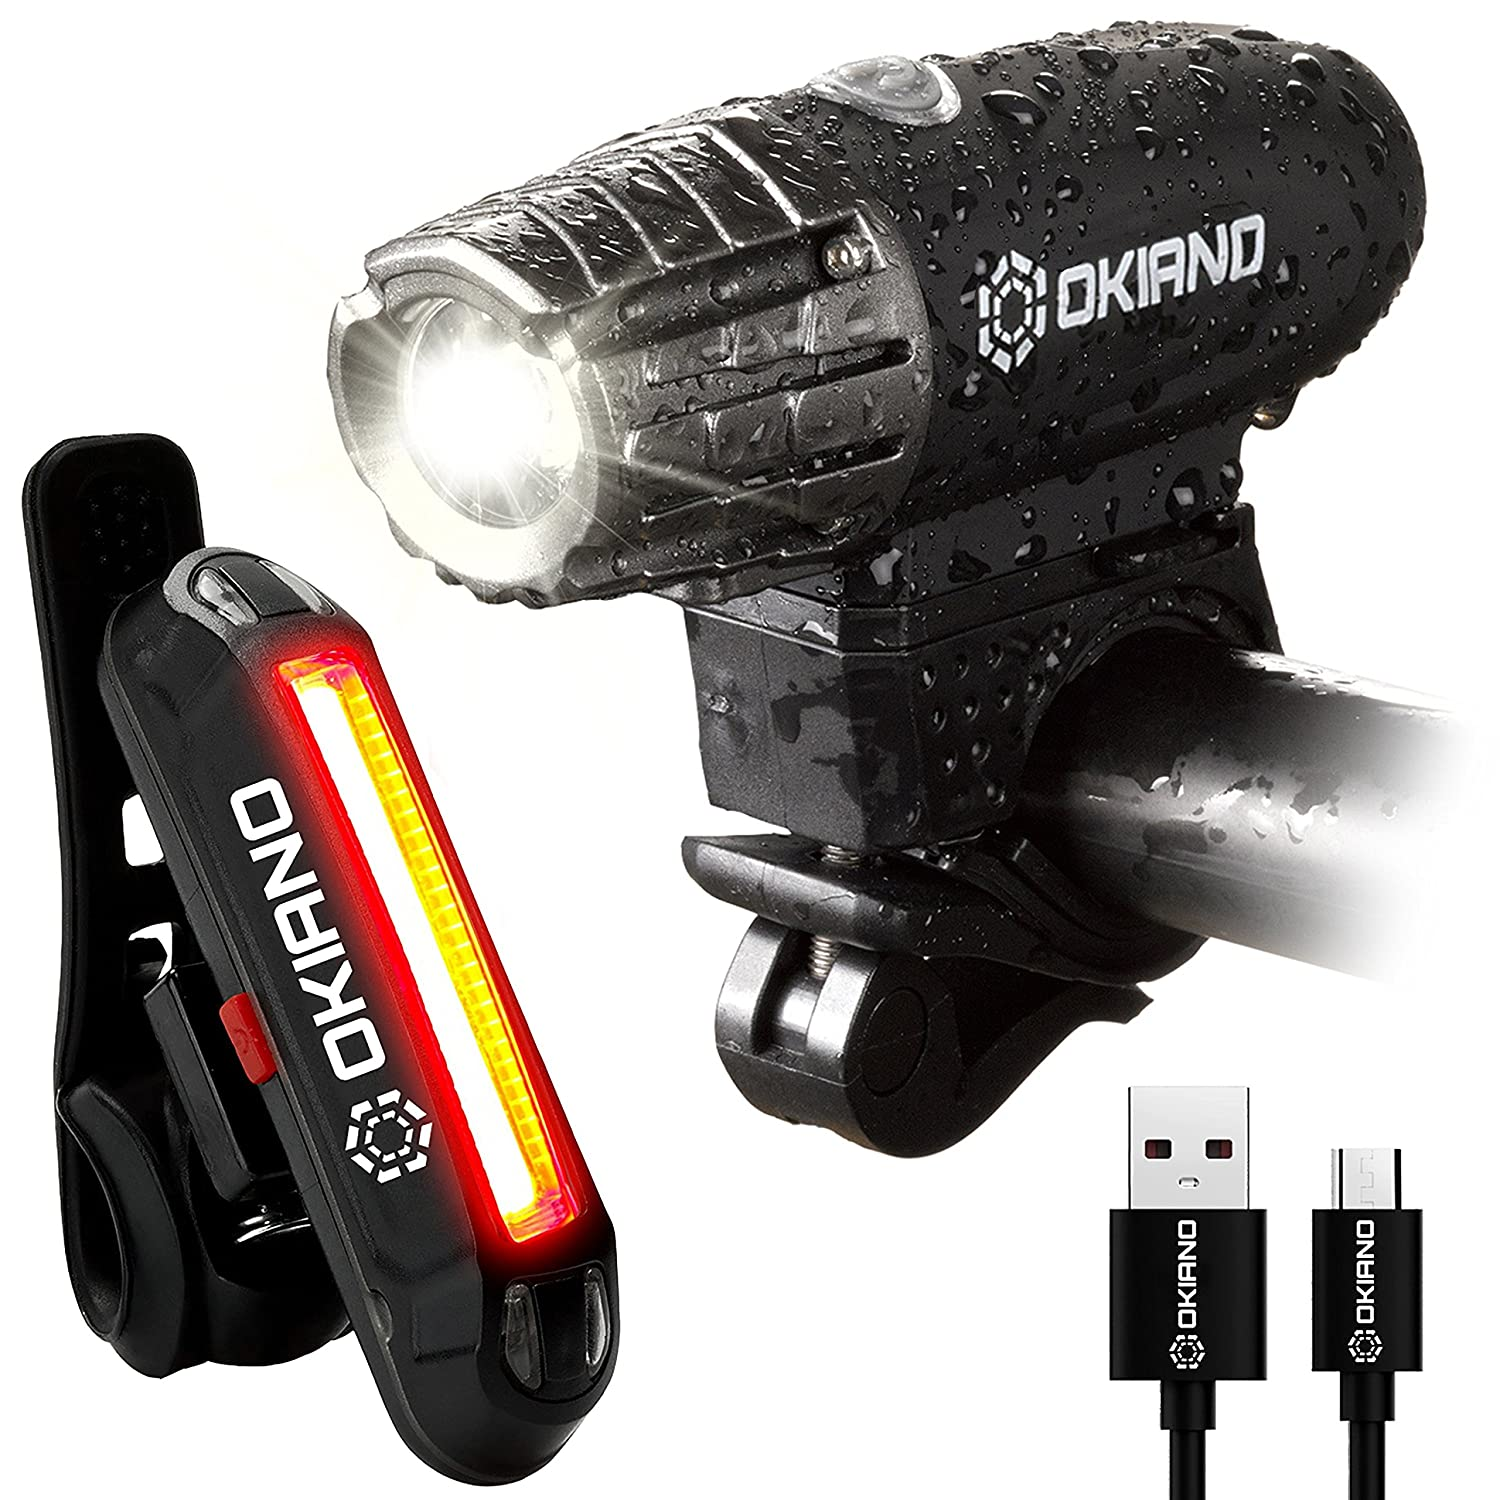 USB Rechargeable Bike Light Set- Super Bright 400 Lumens Bike Headlight 120 Lumens, LED High Brightness Bike TAIL LIGHT. Easy Installation WATER-RESISTANT LED Bike Lights For Safe Cycling At Night